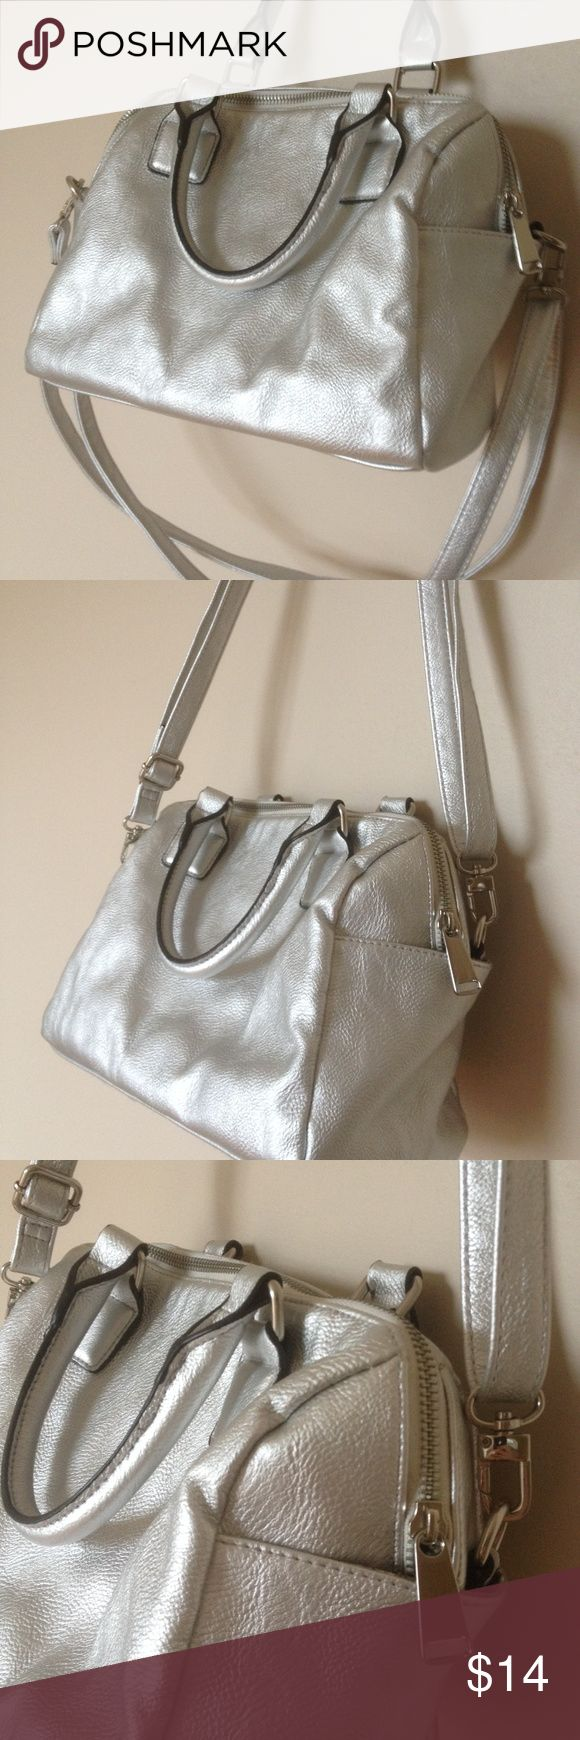 Silver Leather Purse Faux leather, satchel can be shoulder bag using handles or use long adjustable straps for crossbody or desired length, long straps can be un-clipped and removed, pretty interior with zippered and open pouches, large zipper closure, medium sized bag. In great condition other than two flaws - on the bottom of the bag (shown in photo #4) there is a place / spot on the leather, and the second flaw is shown in the last photo of discoloration on the interior (not exterior)…